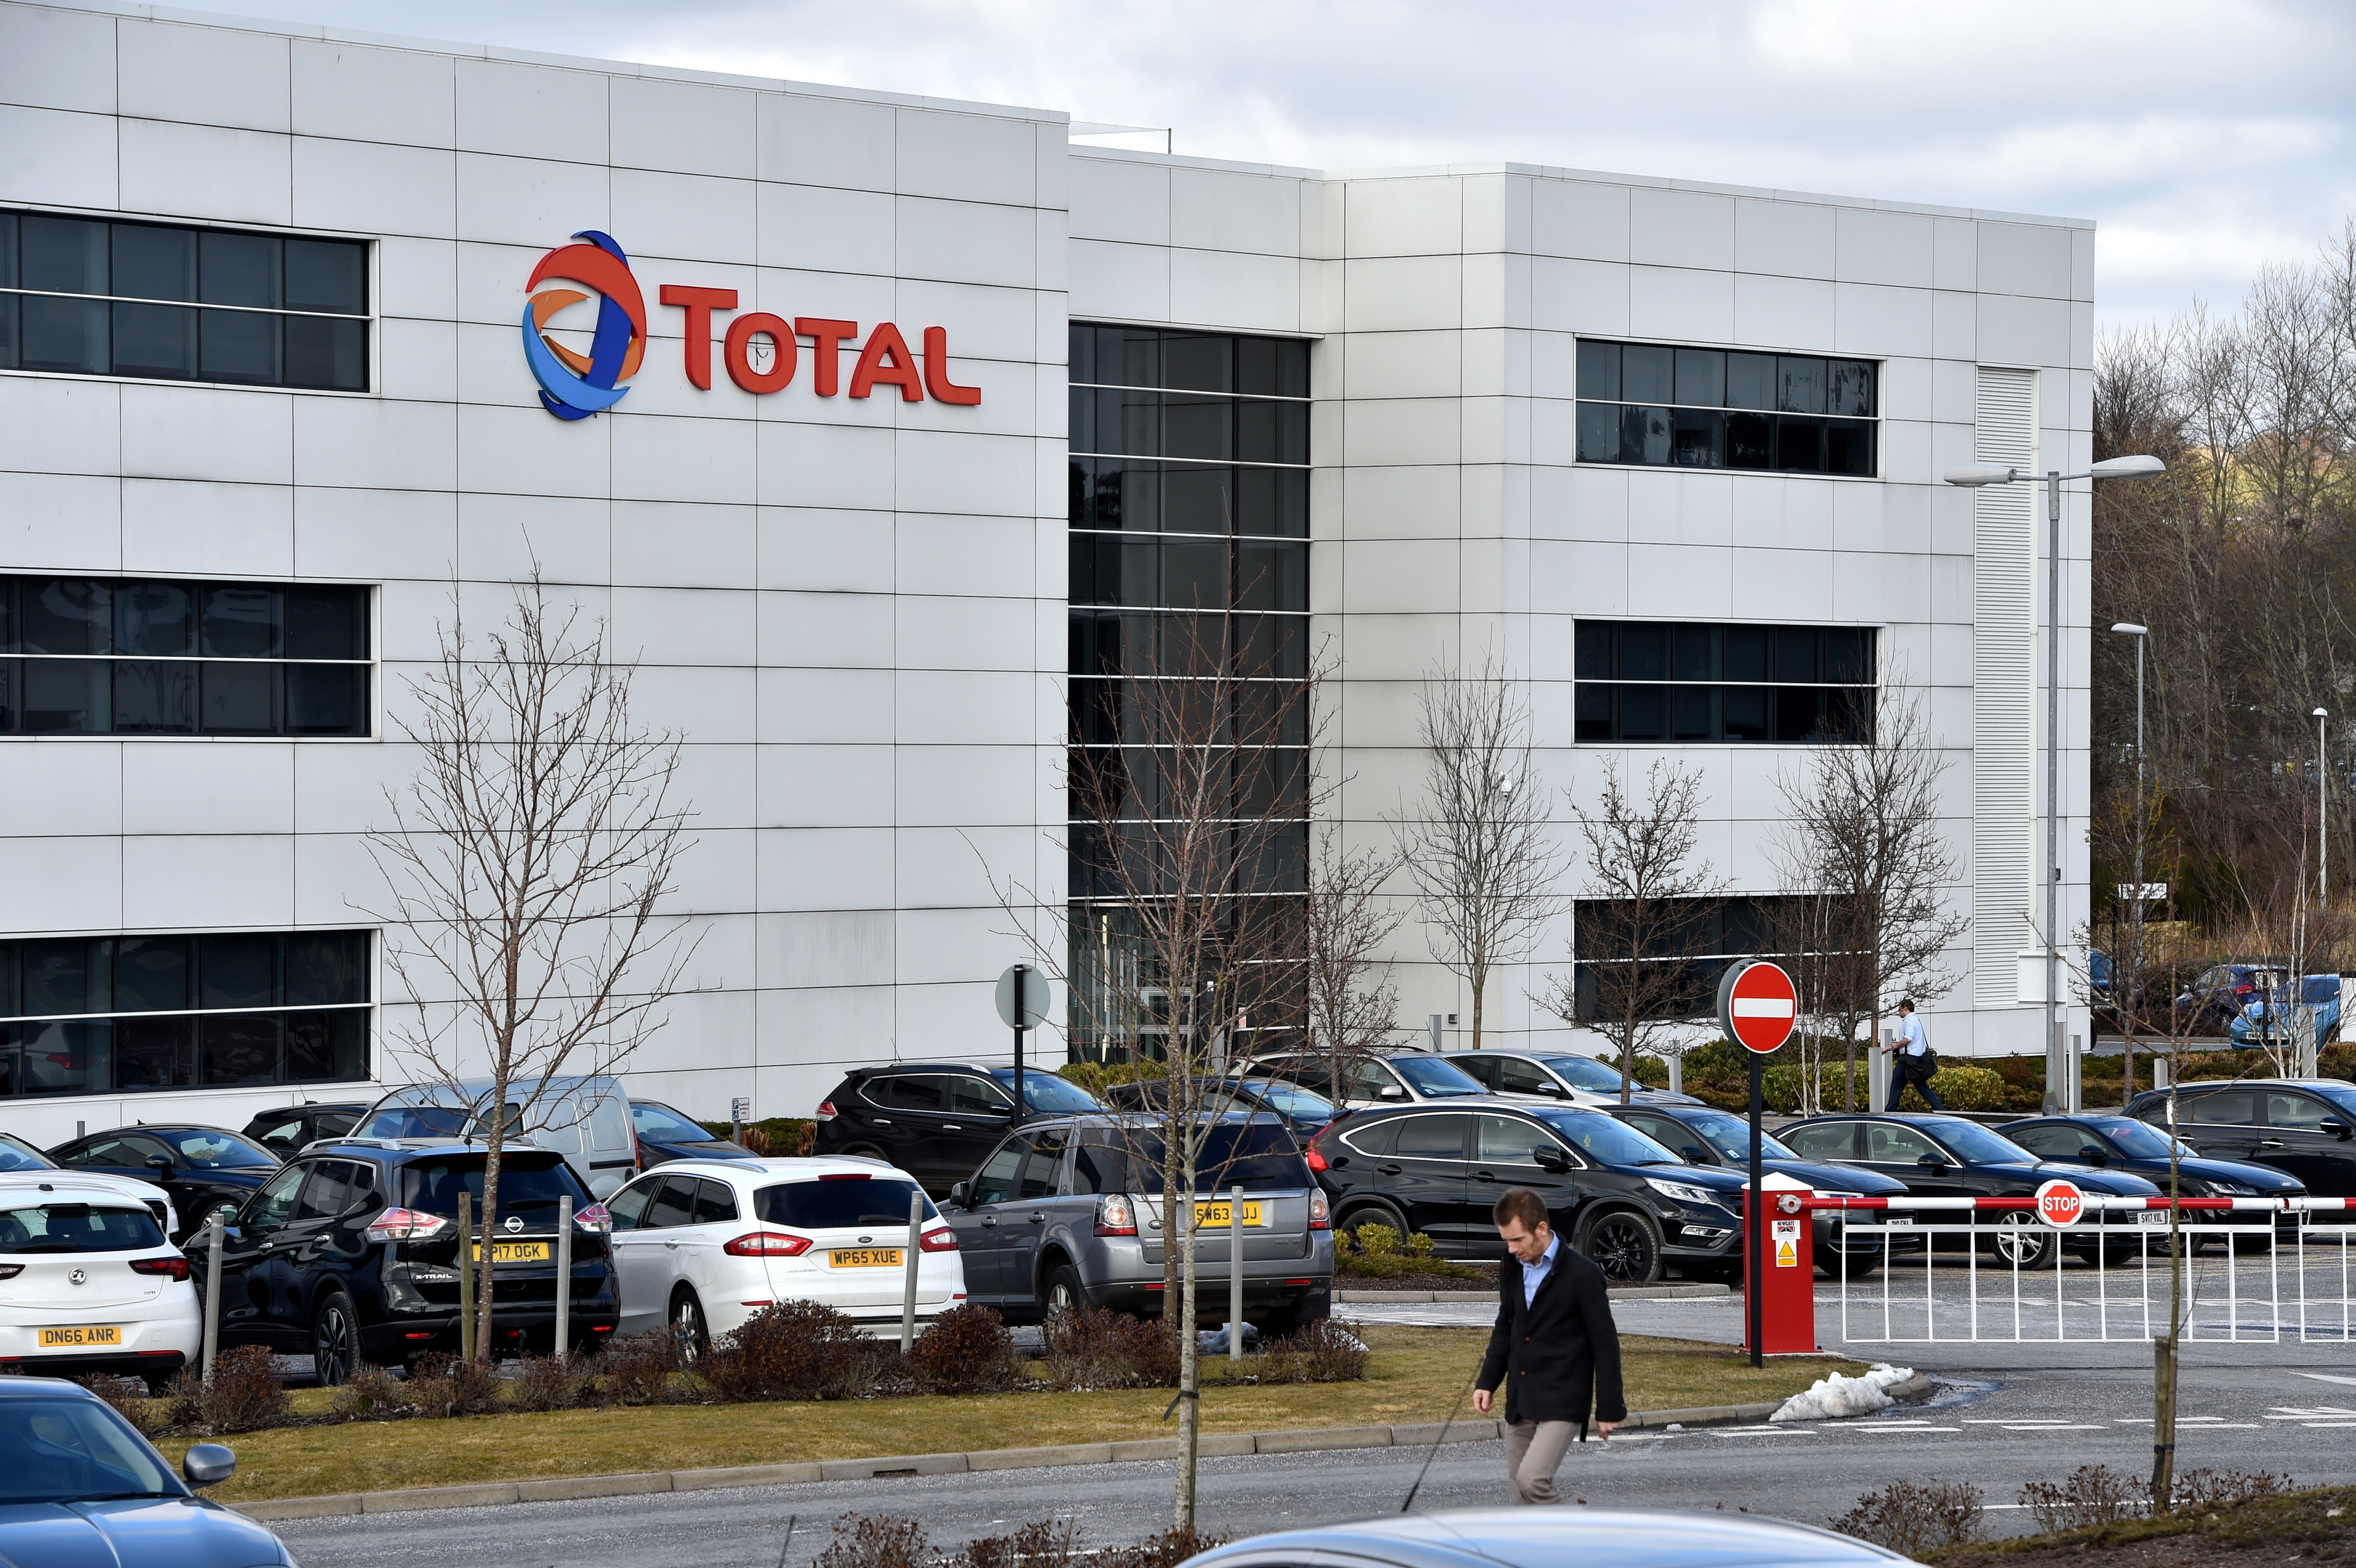 Total is focused on controlling capex amid price volatility, although it remains open to oil and LNG low-cost resources around the world.